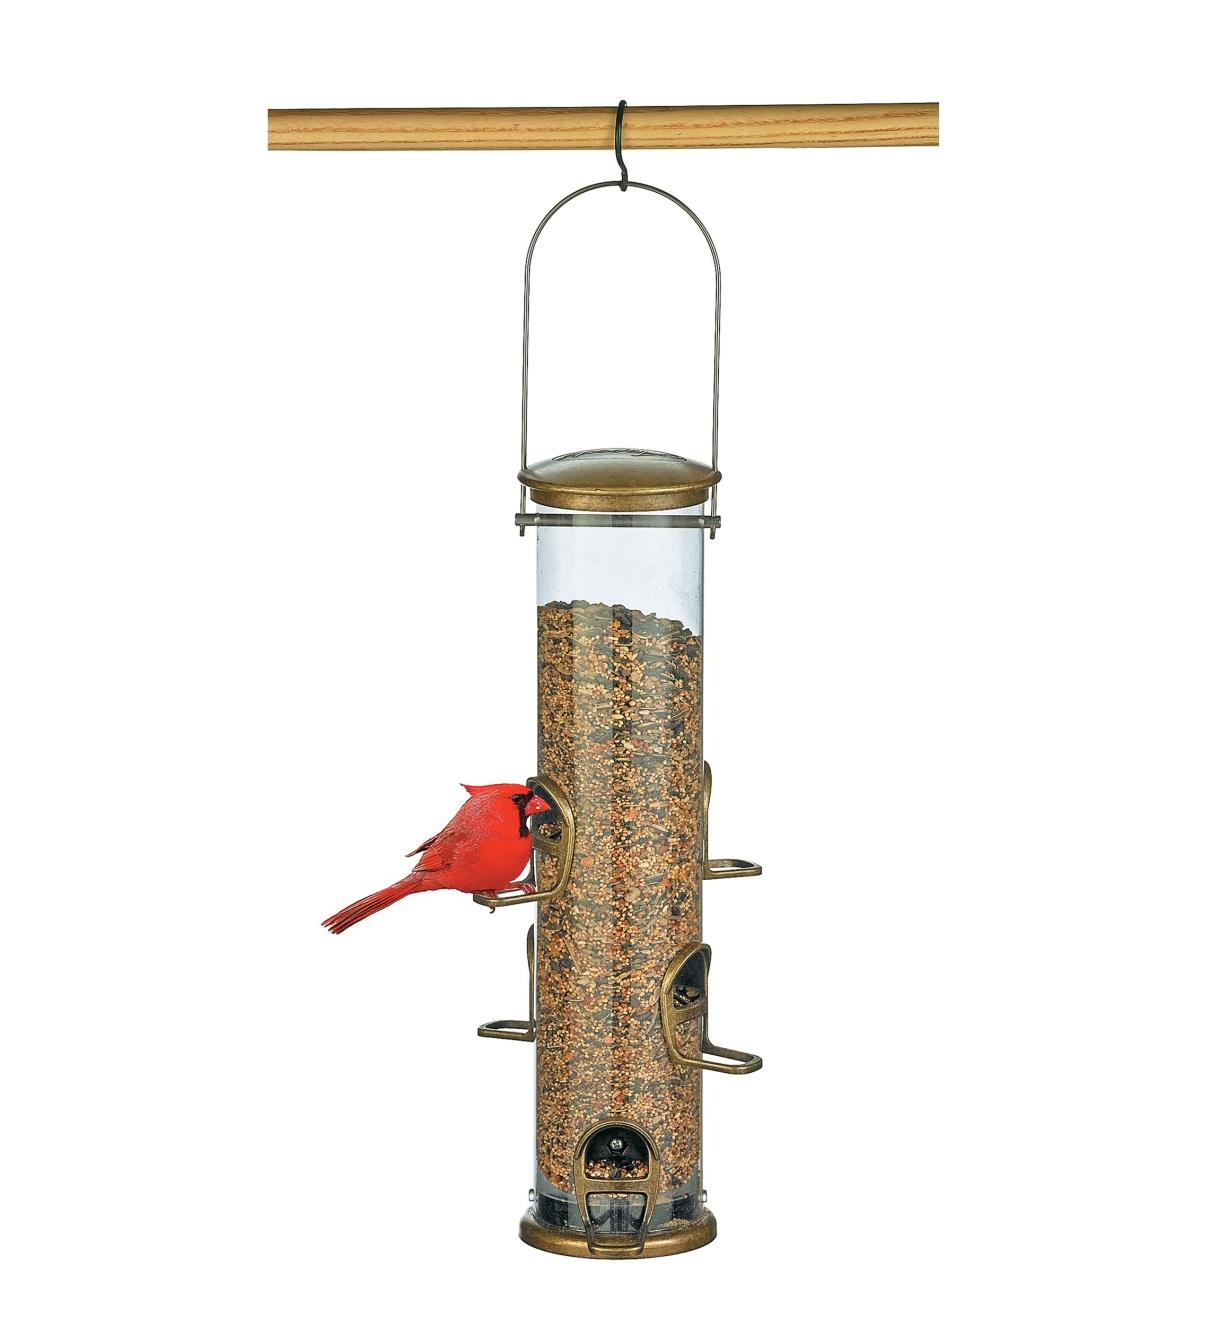 Cardinal perched on large 6-Port Quick-Clean Tube Songbird Feeder filled with seeds